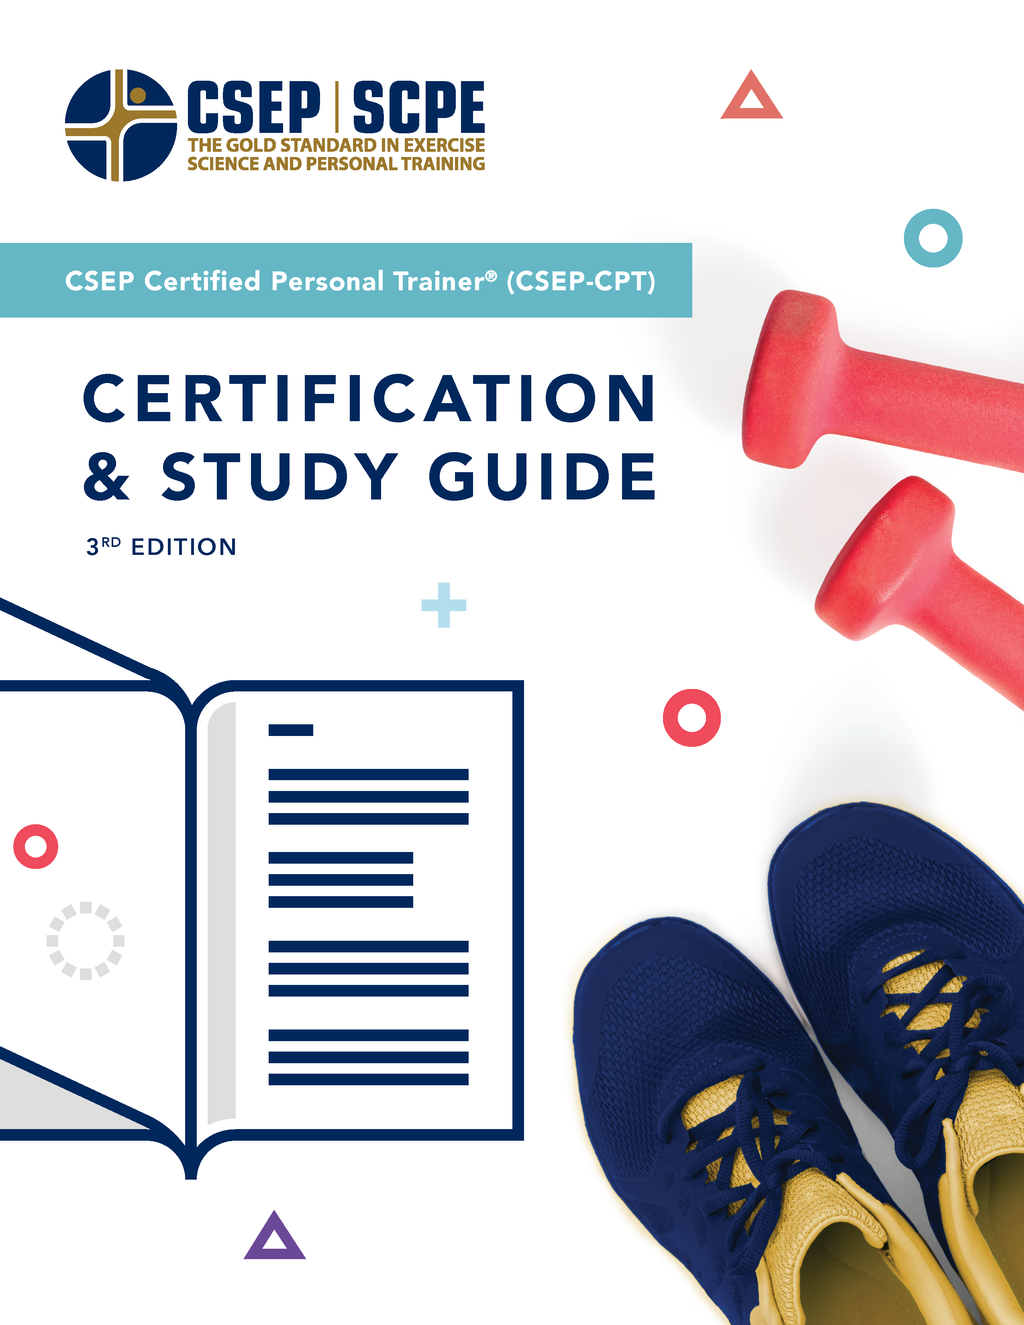 CSEP Certified Personal Trainer® (CSEP-CPT) Certification Study Guide